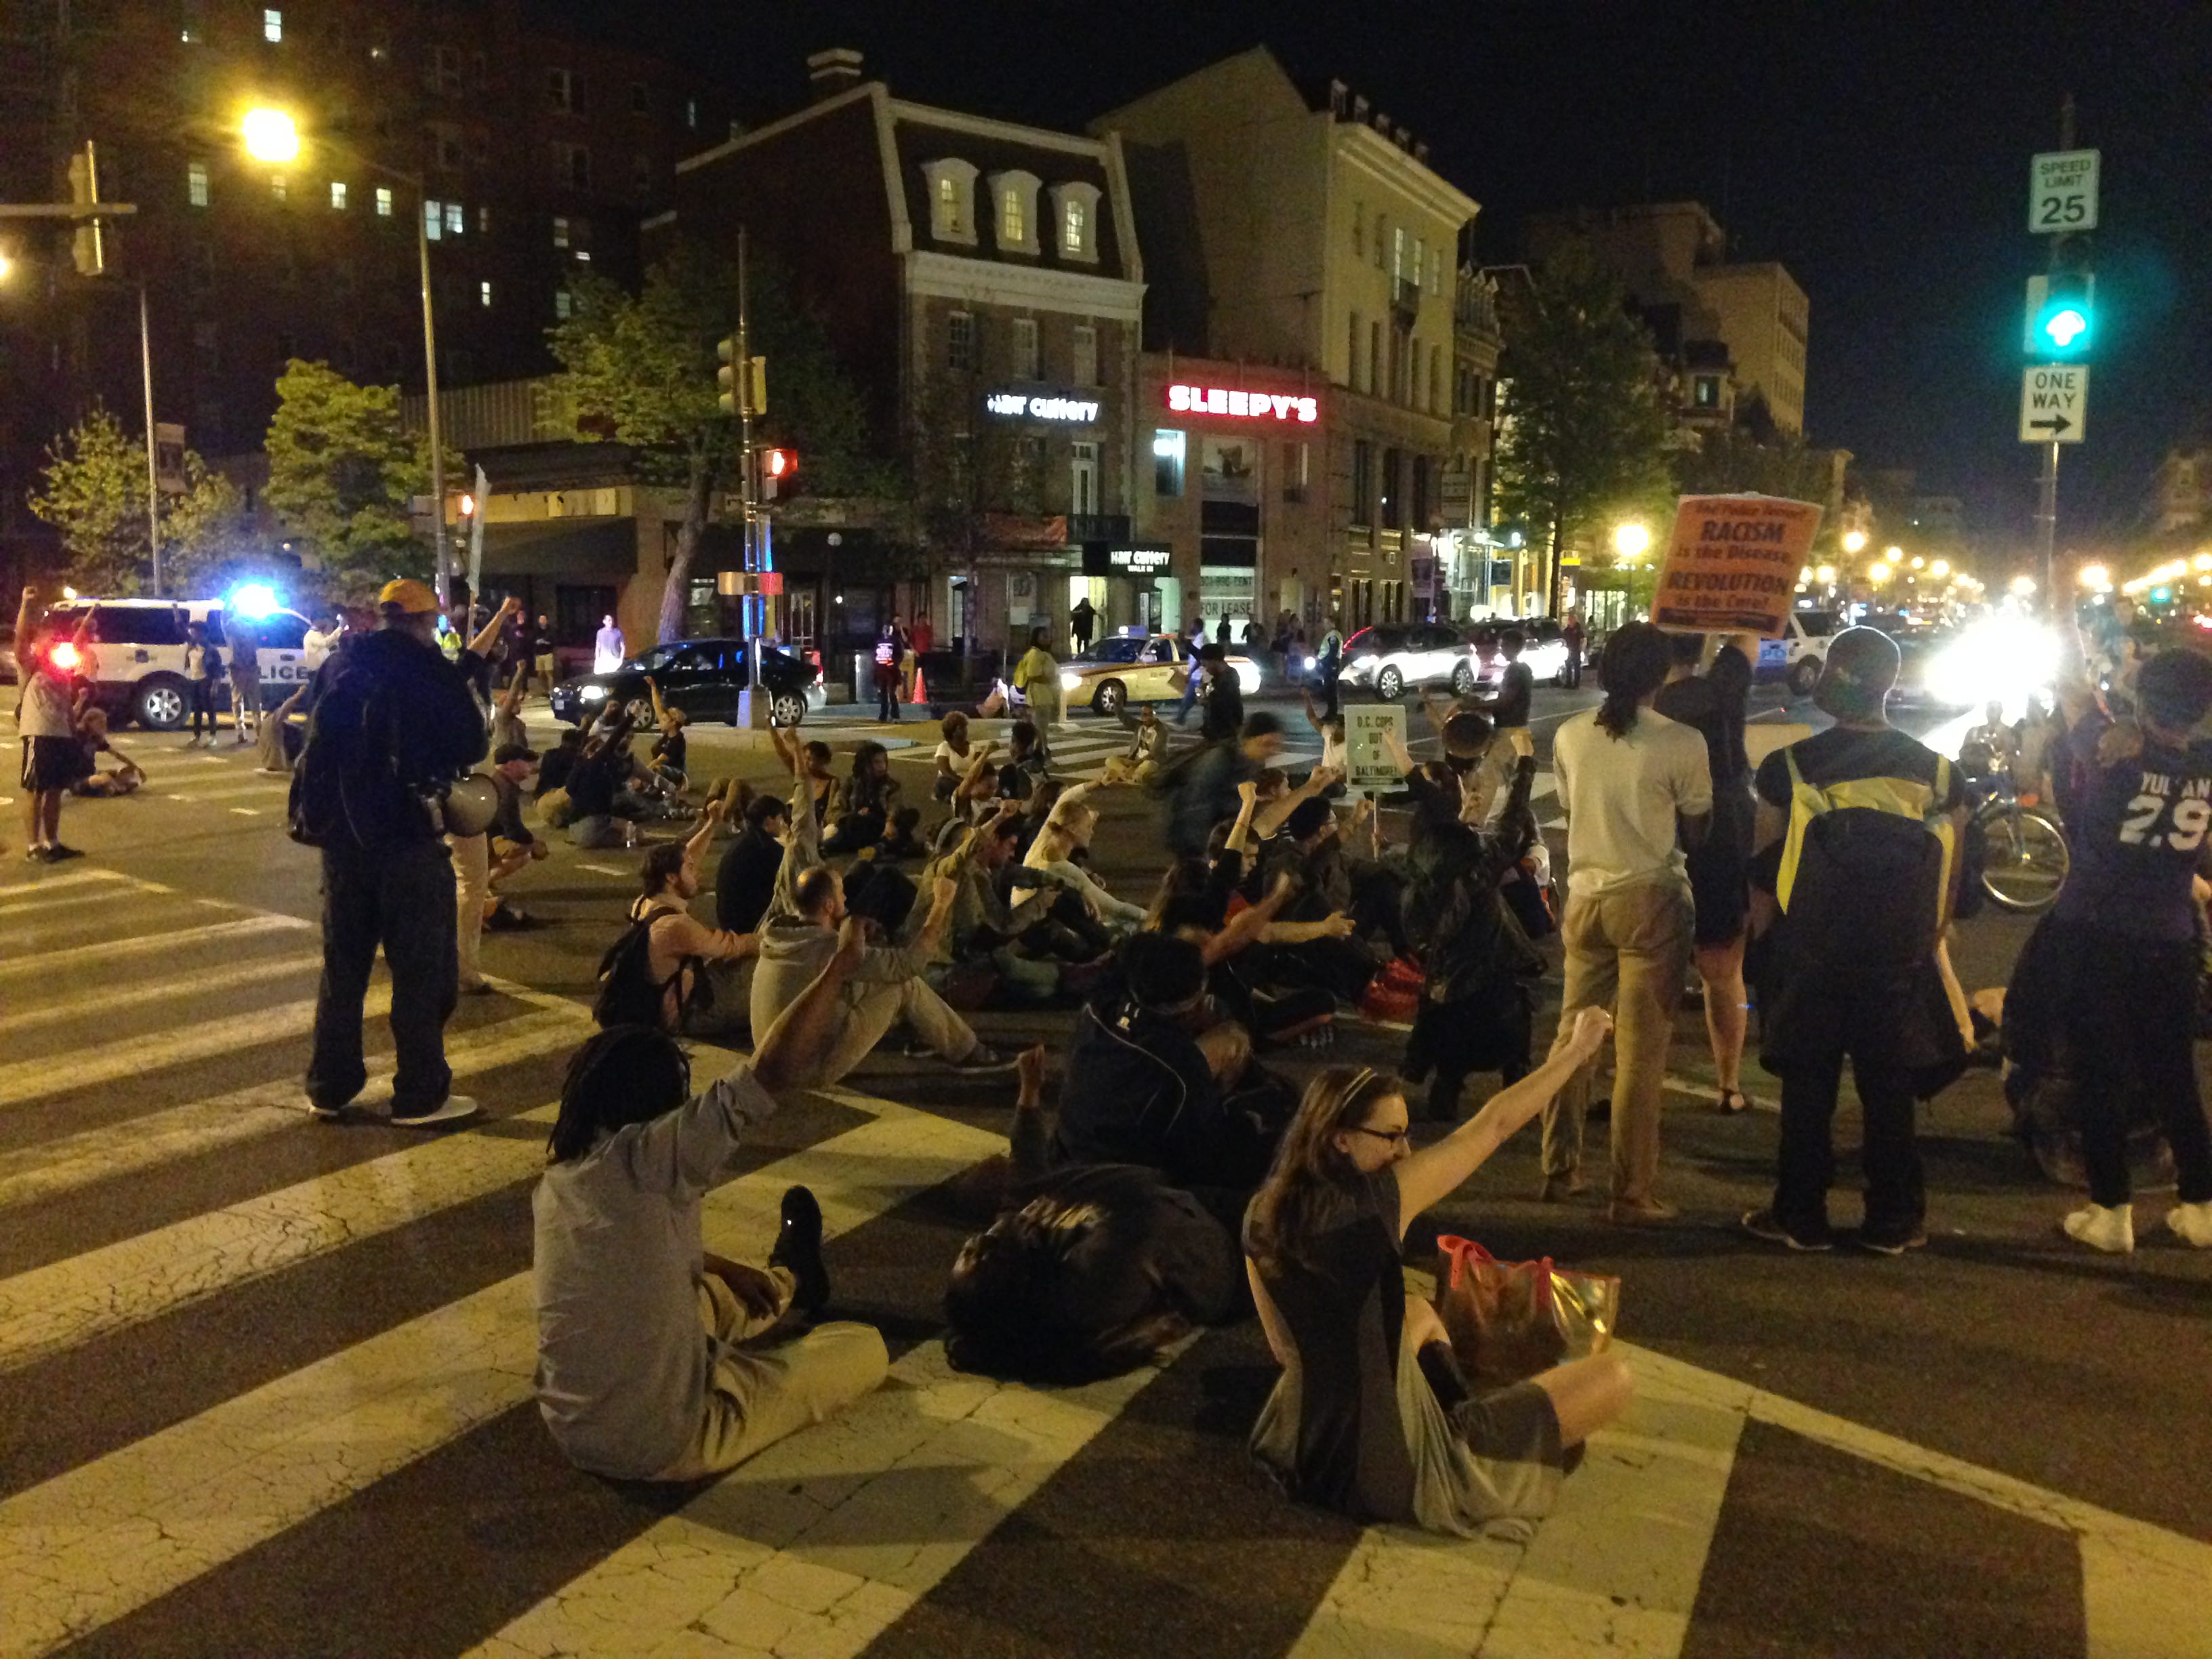 Protesters in Dupont Circle